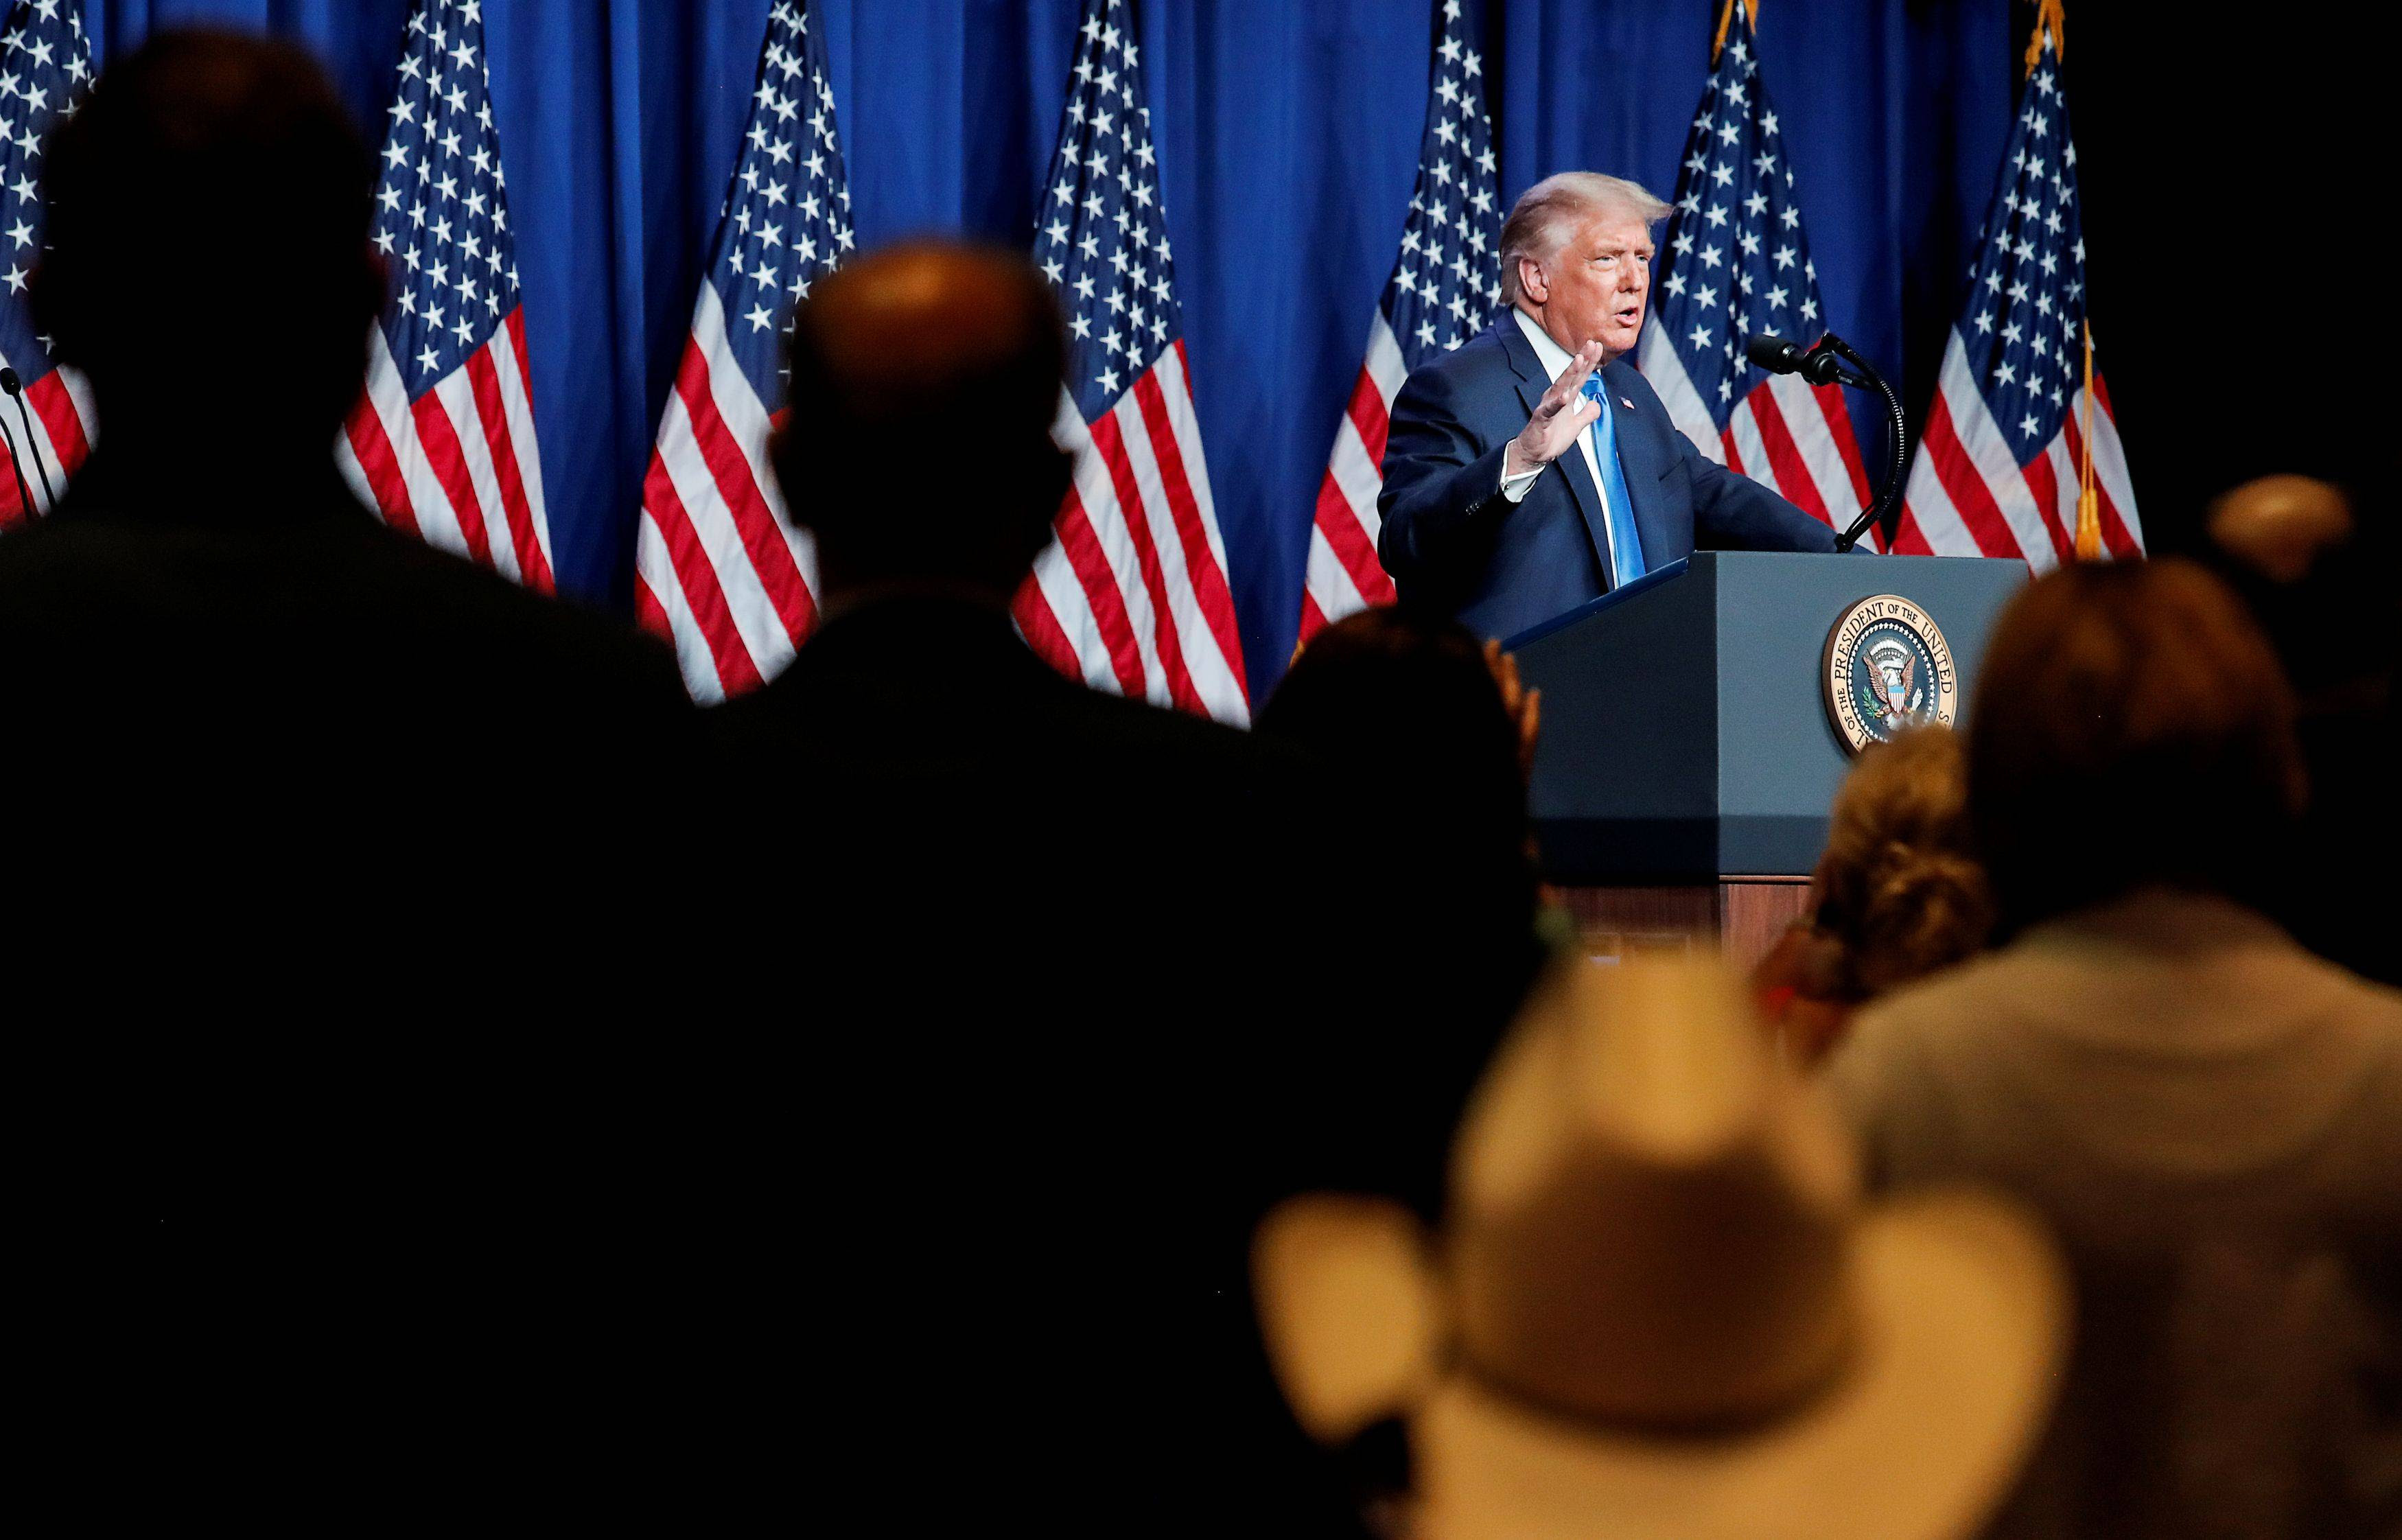 President Trump addresses the first day of the Republican National Convention after delegates voted to confirm his nomination Monday during the day, before the prime time events. (REUTERS/Carlos Barria)